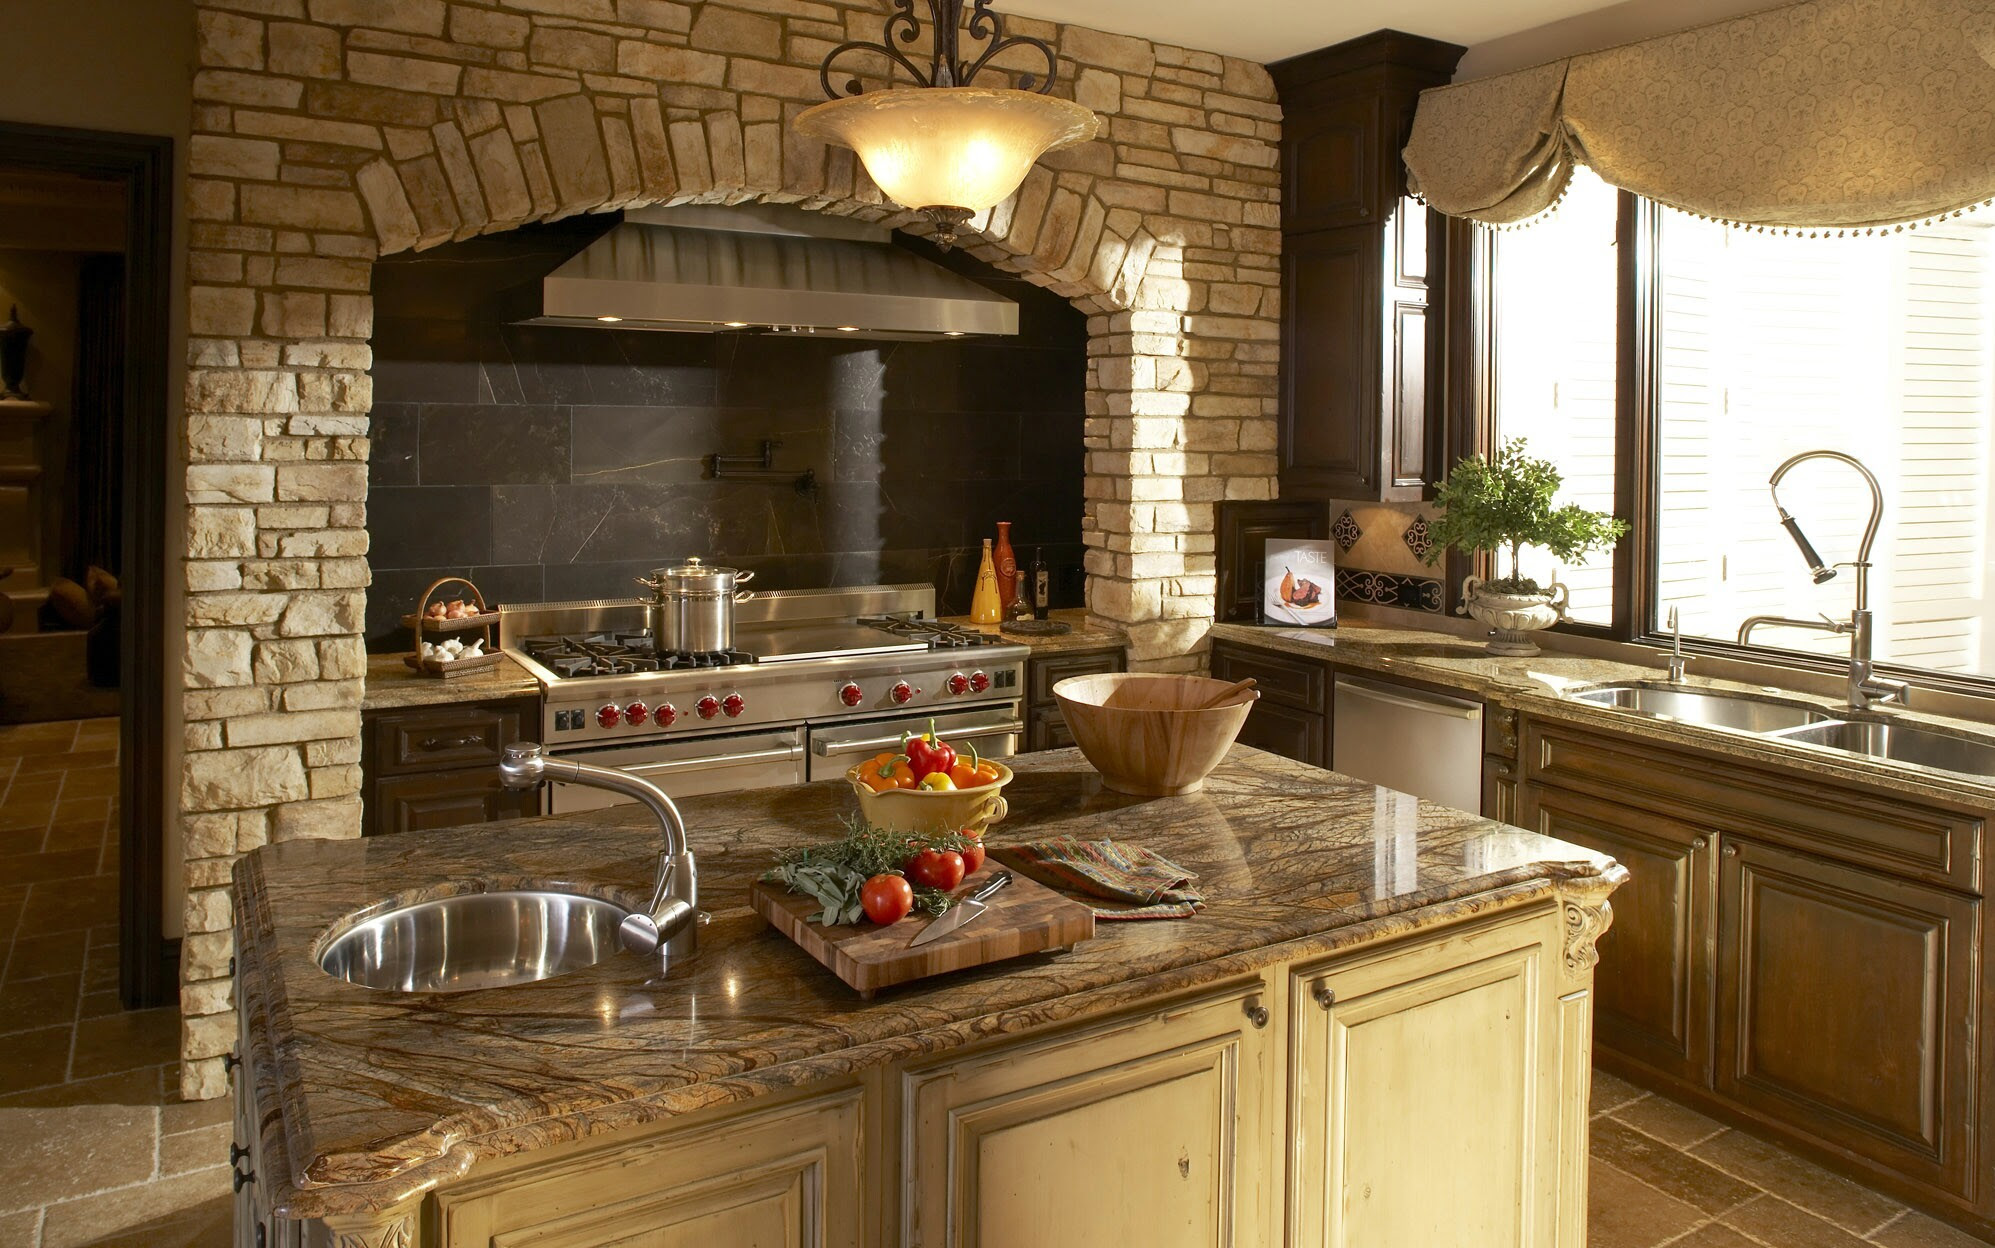 Italian Kitchen Design Tips - Improving the Warmth and Look